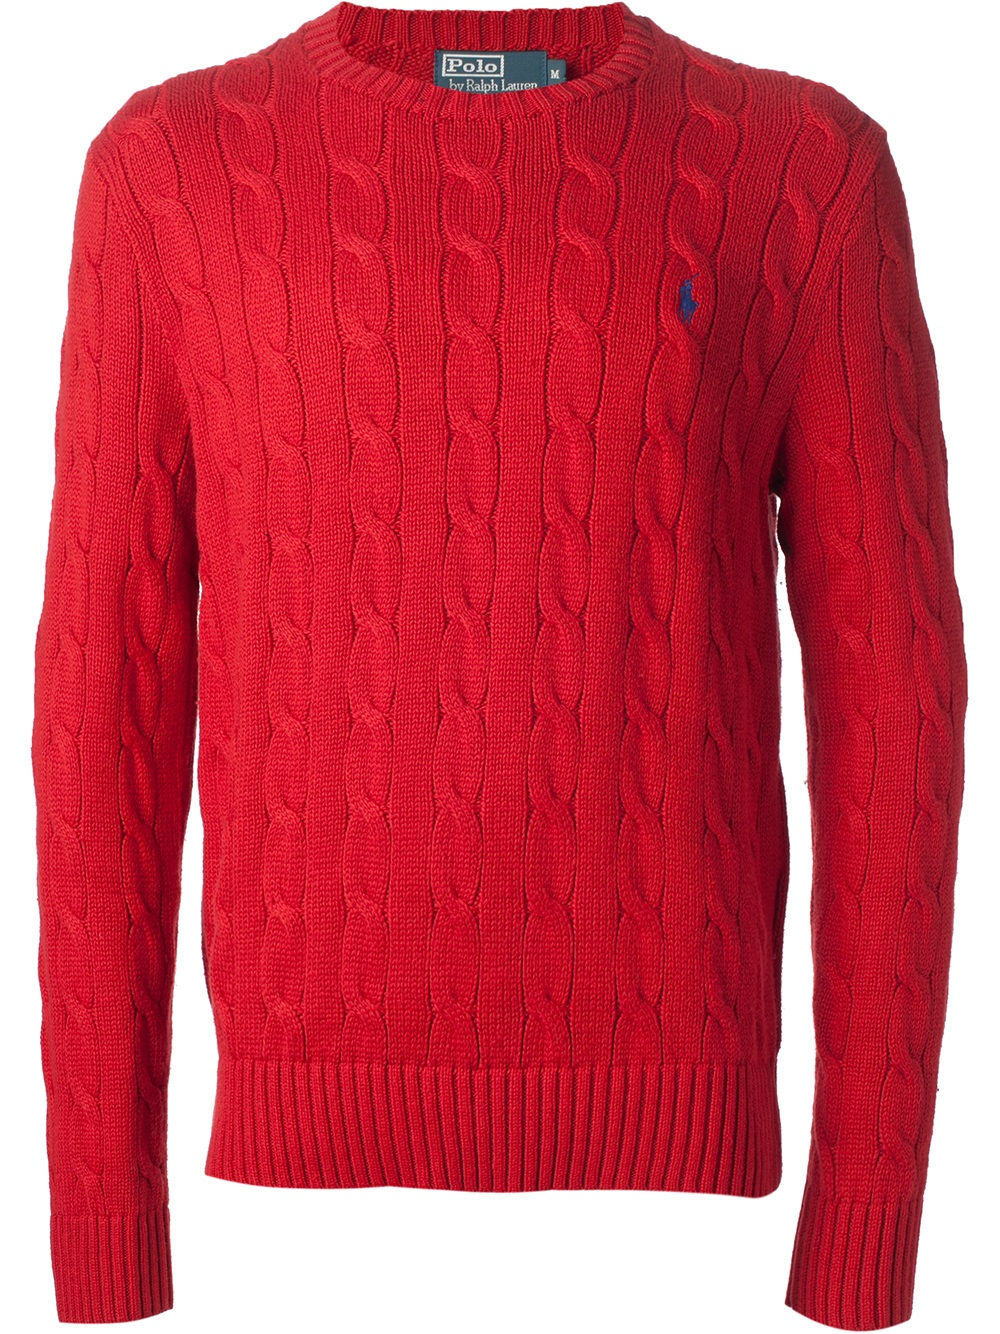 Polo ralph lauren Cable Knit Sweater in Red for Men | Lyst